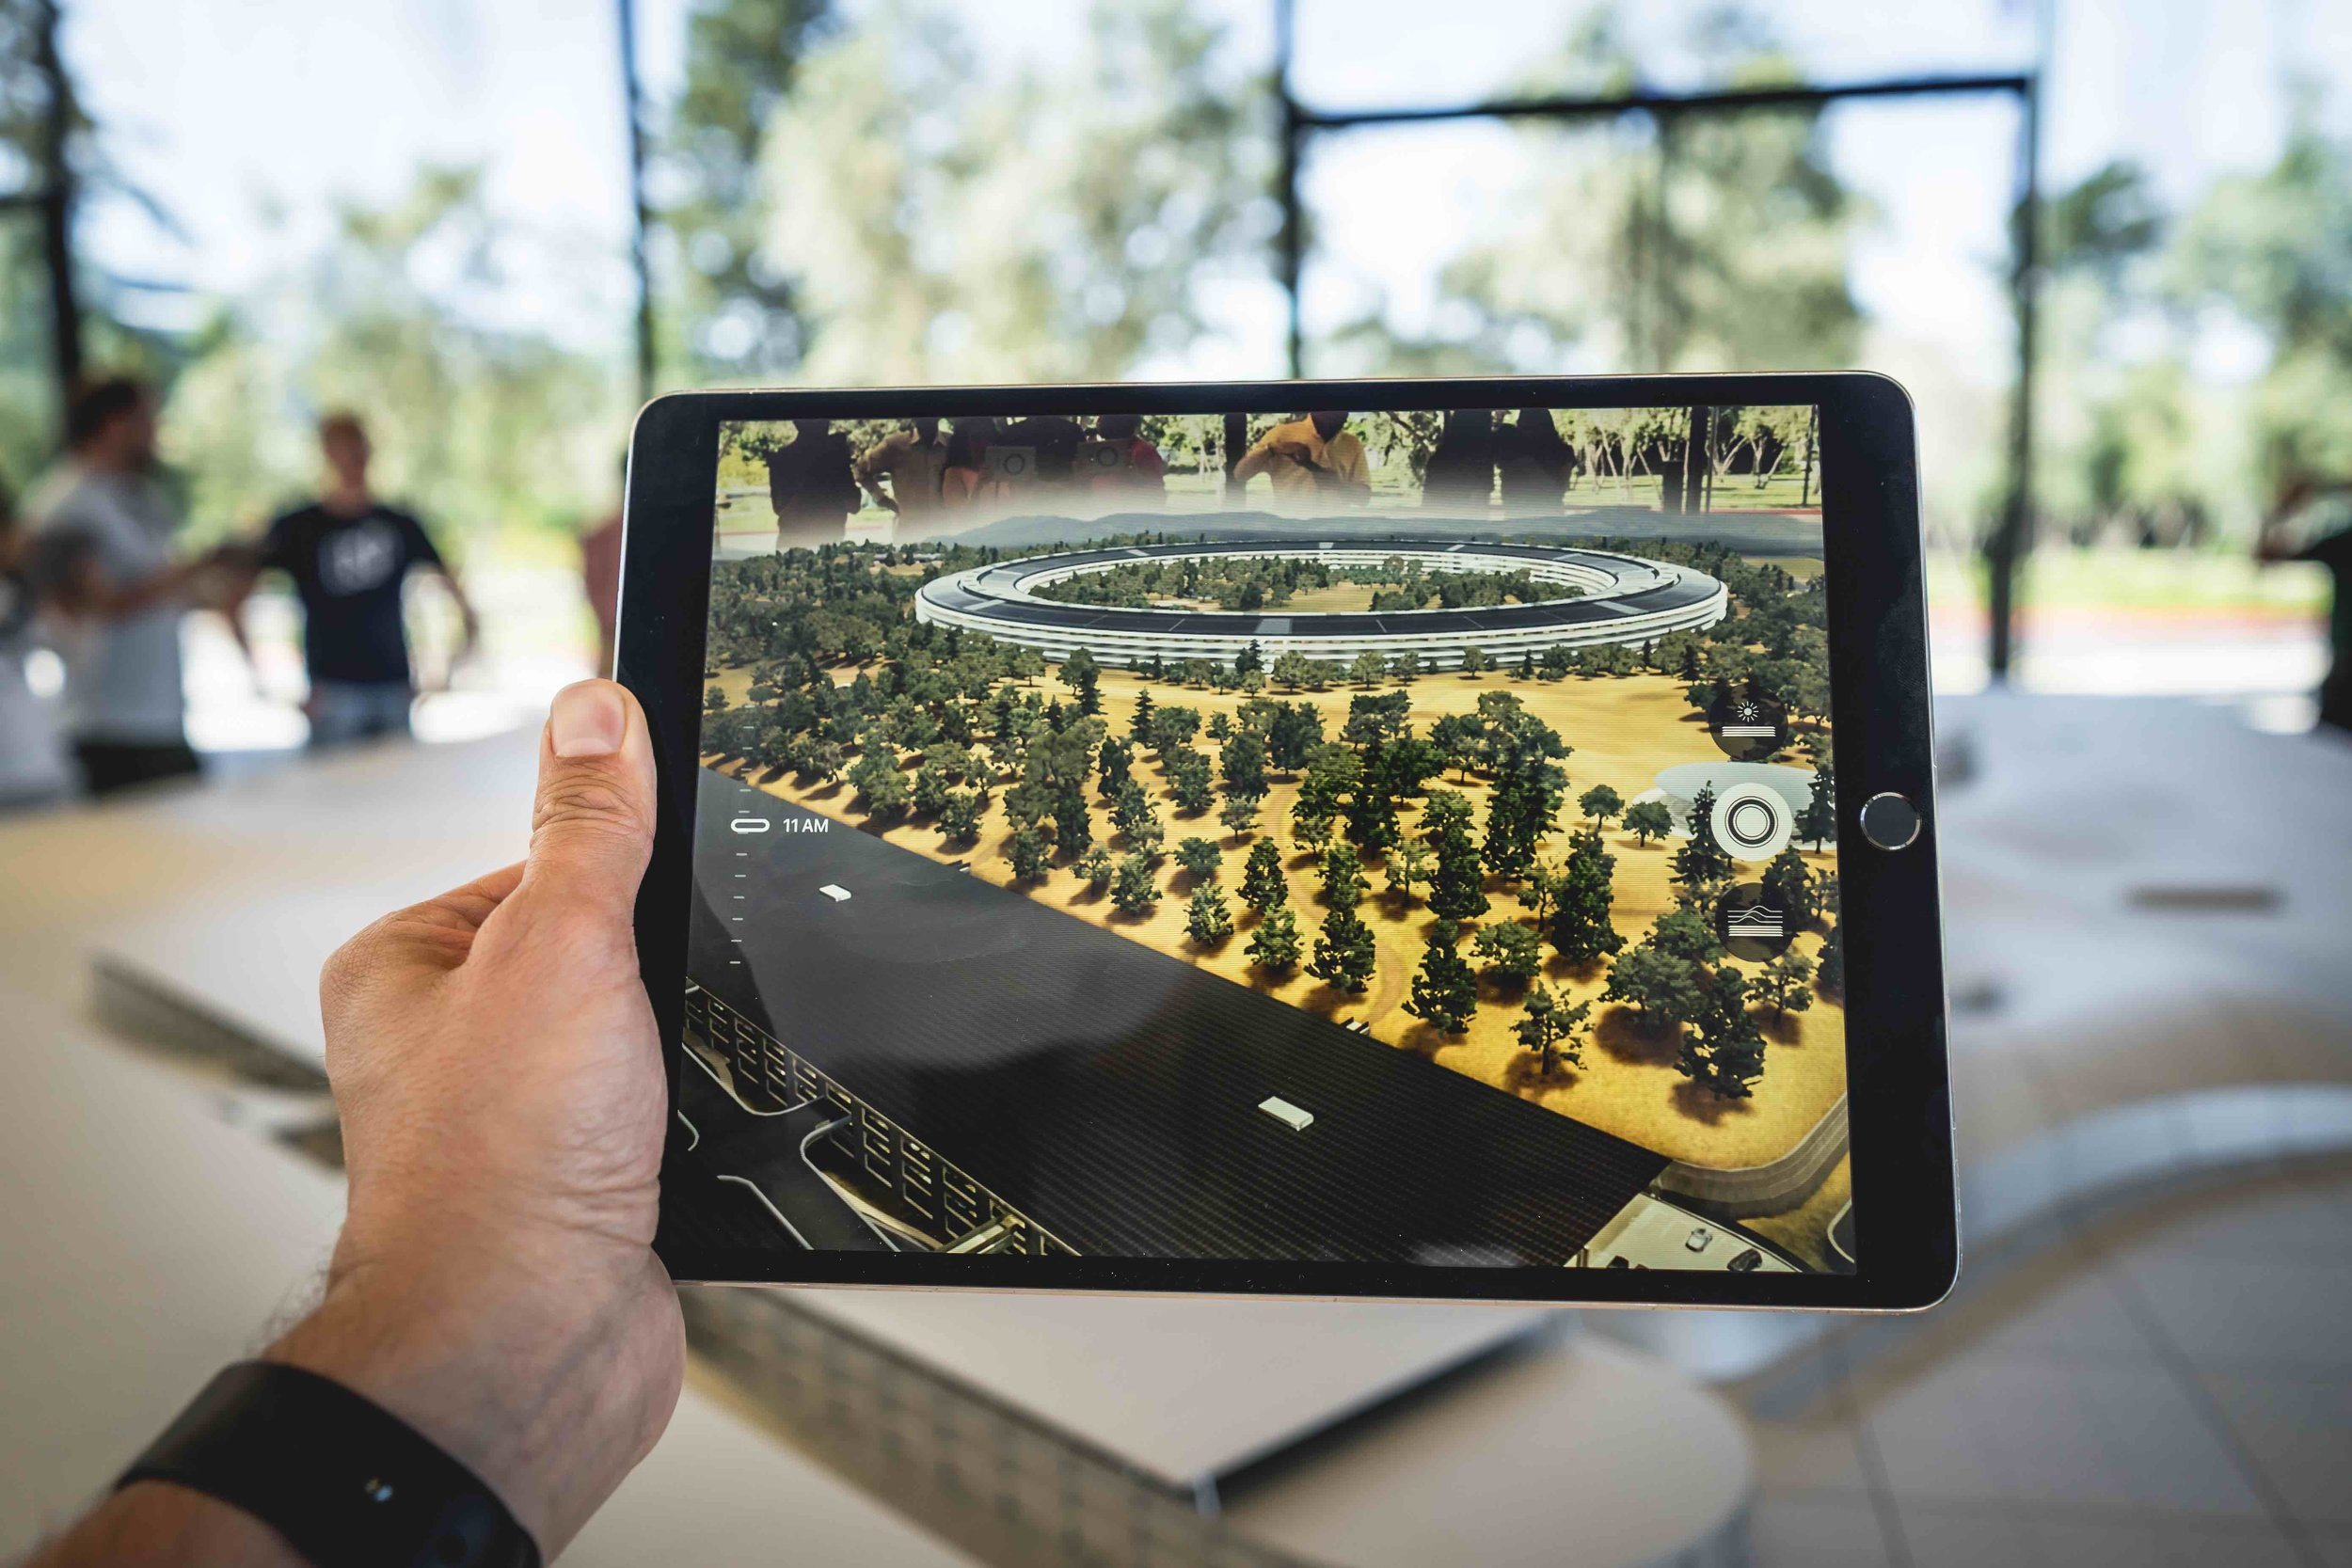 Augmented reality (AR) - AR experiences can open up experiential and multi-modal ways of learning for your content. Any learning experience that requires real-world movement or exploration can be brought to life using AR.